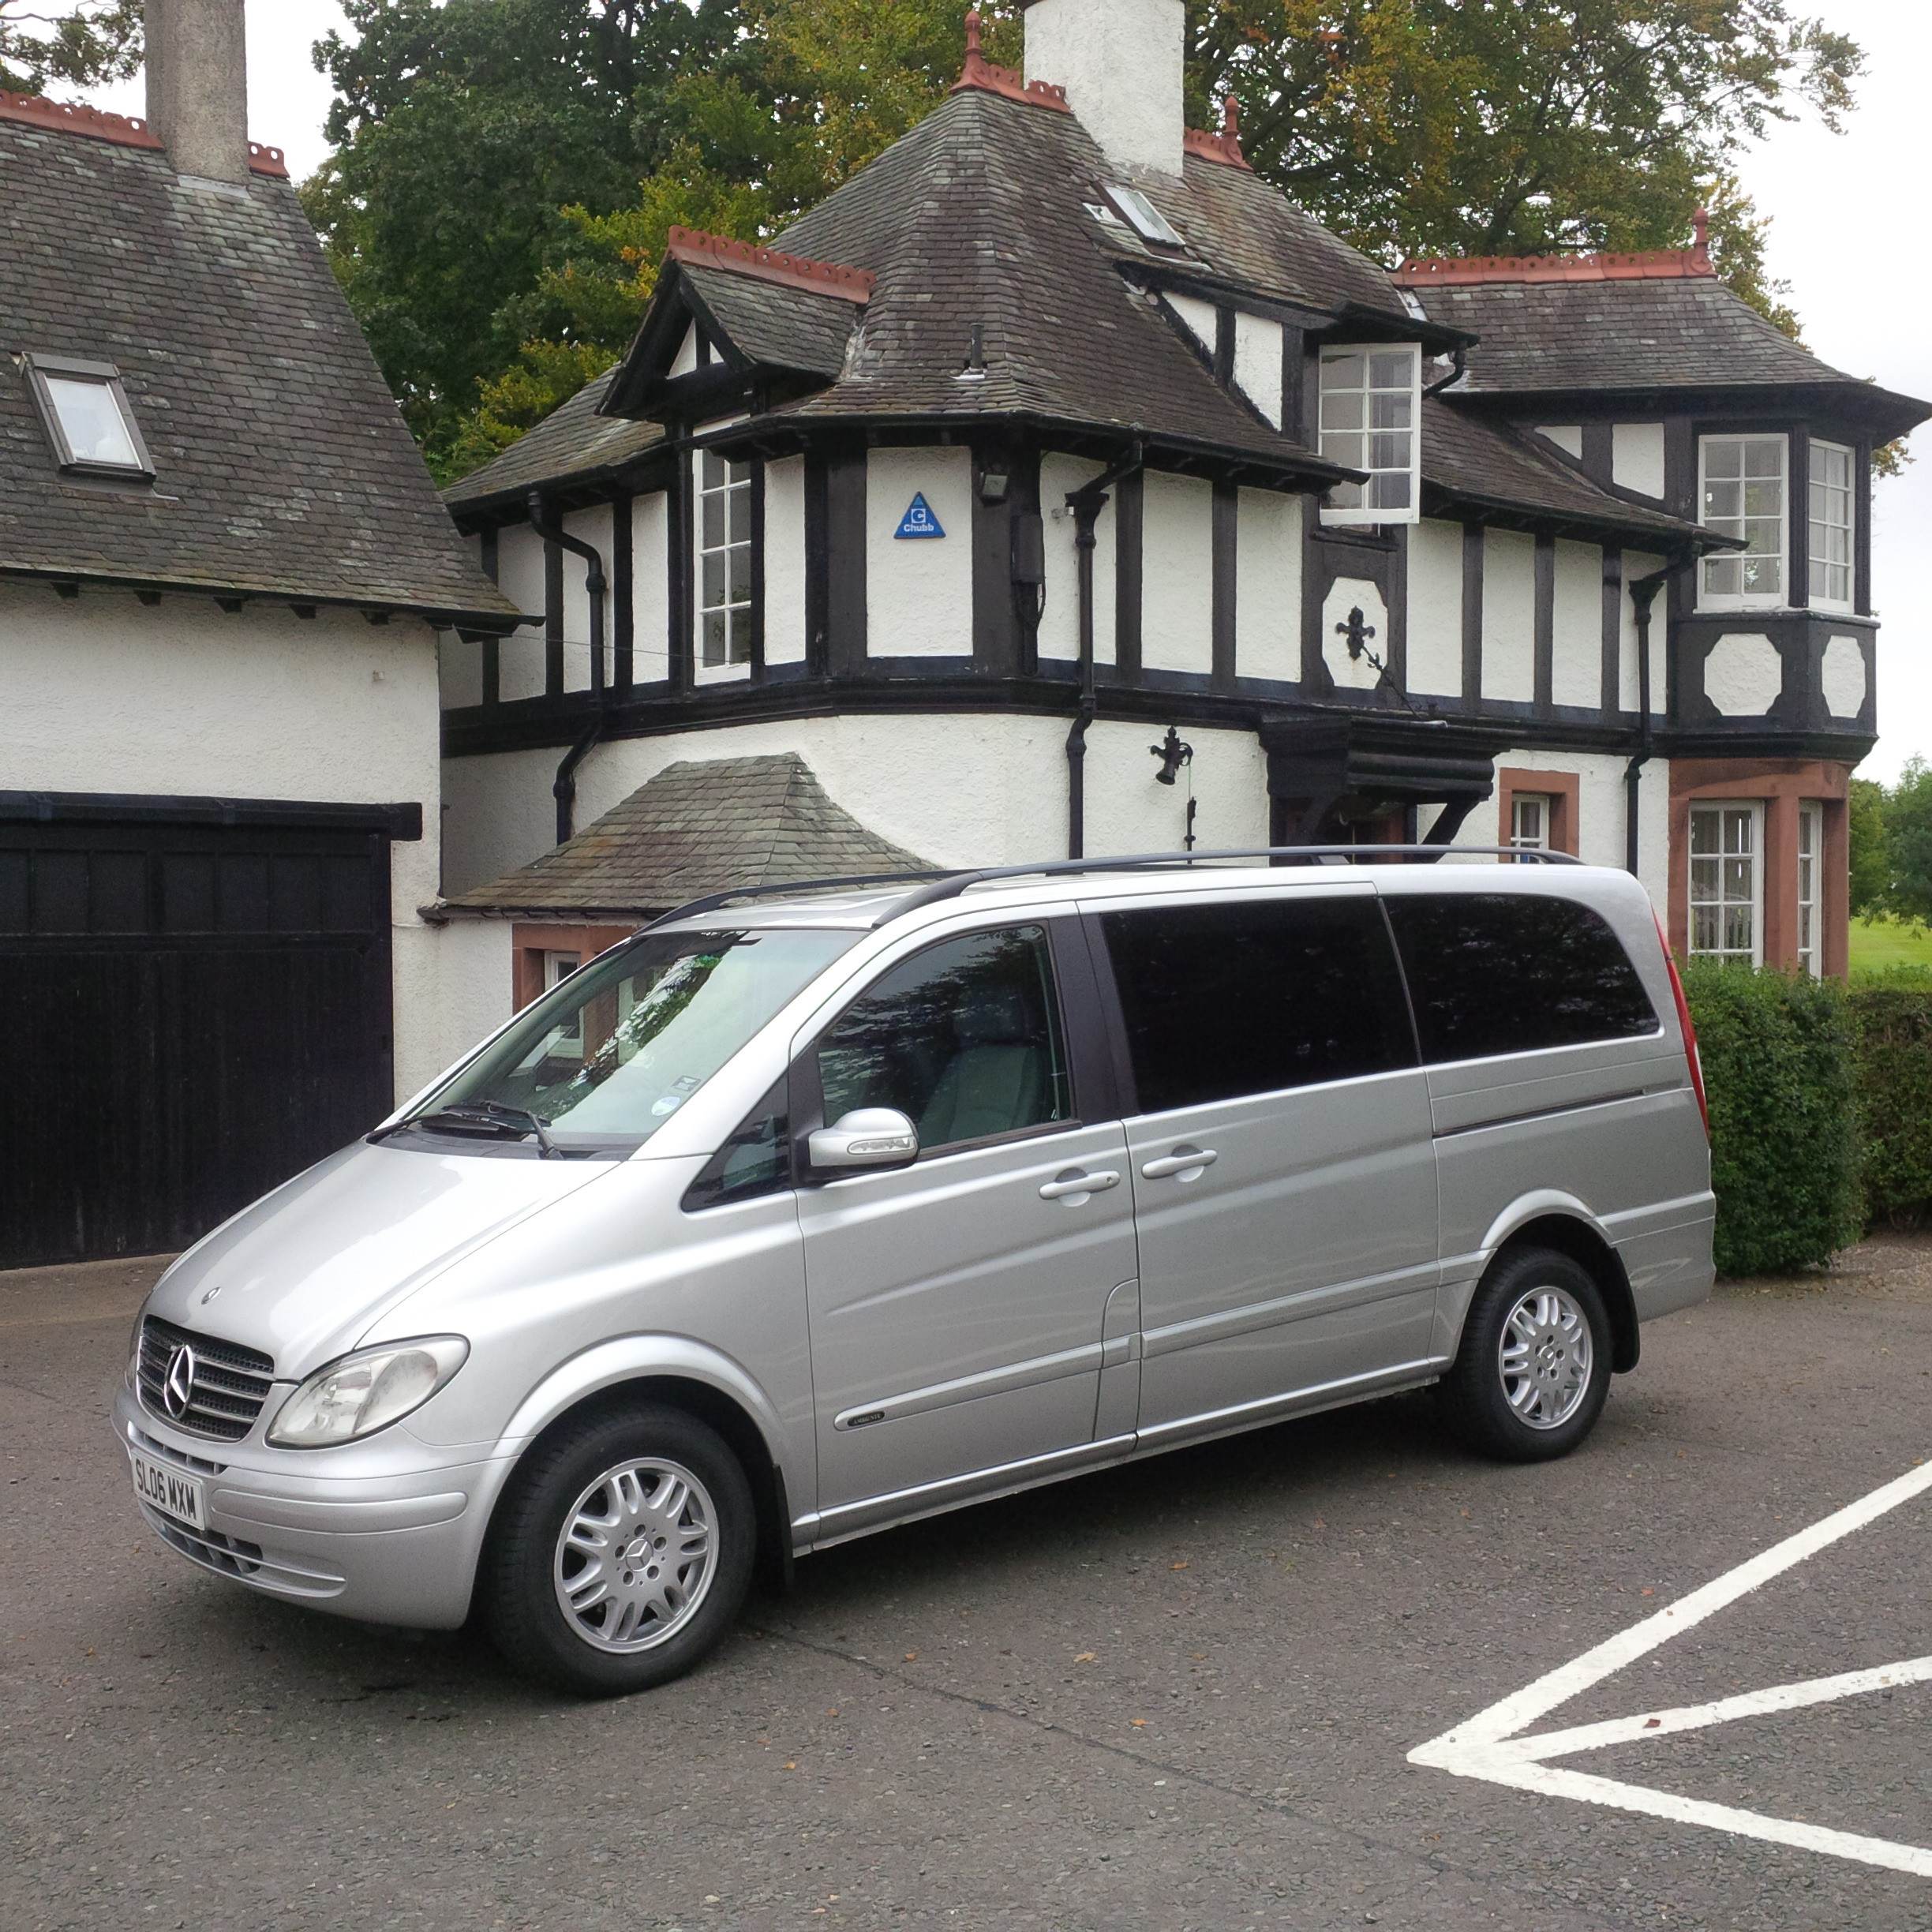 Mercedes Luxury People Carrier MPV